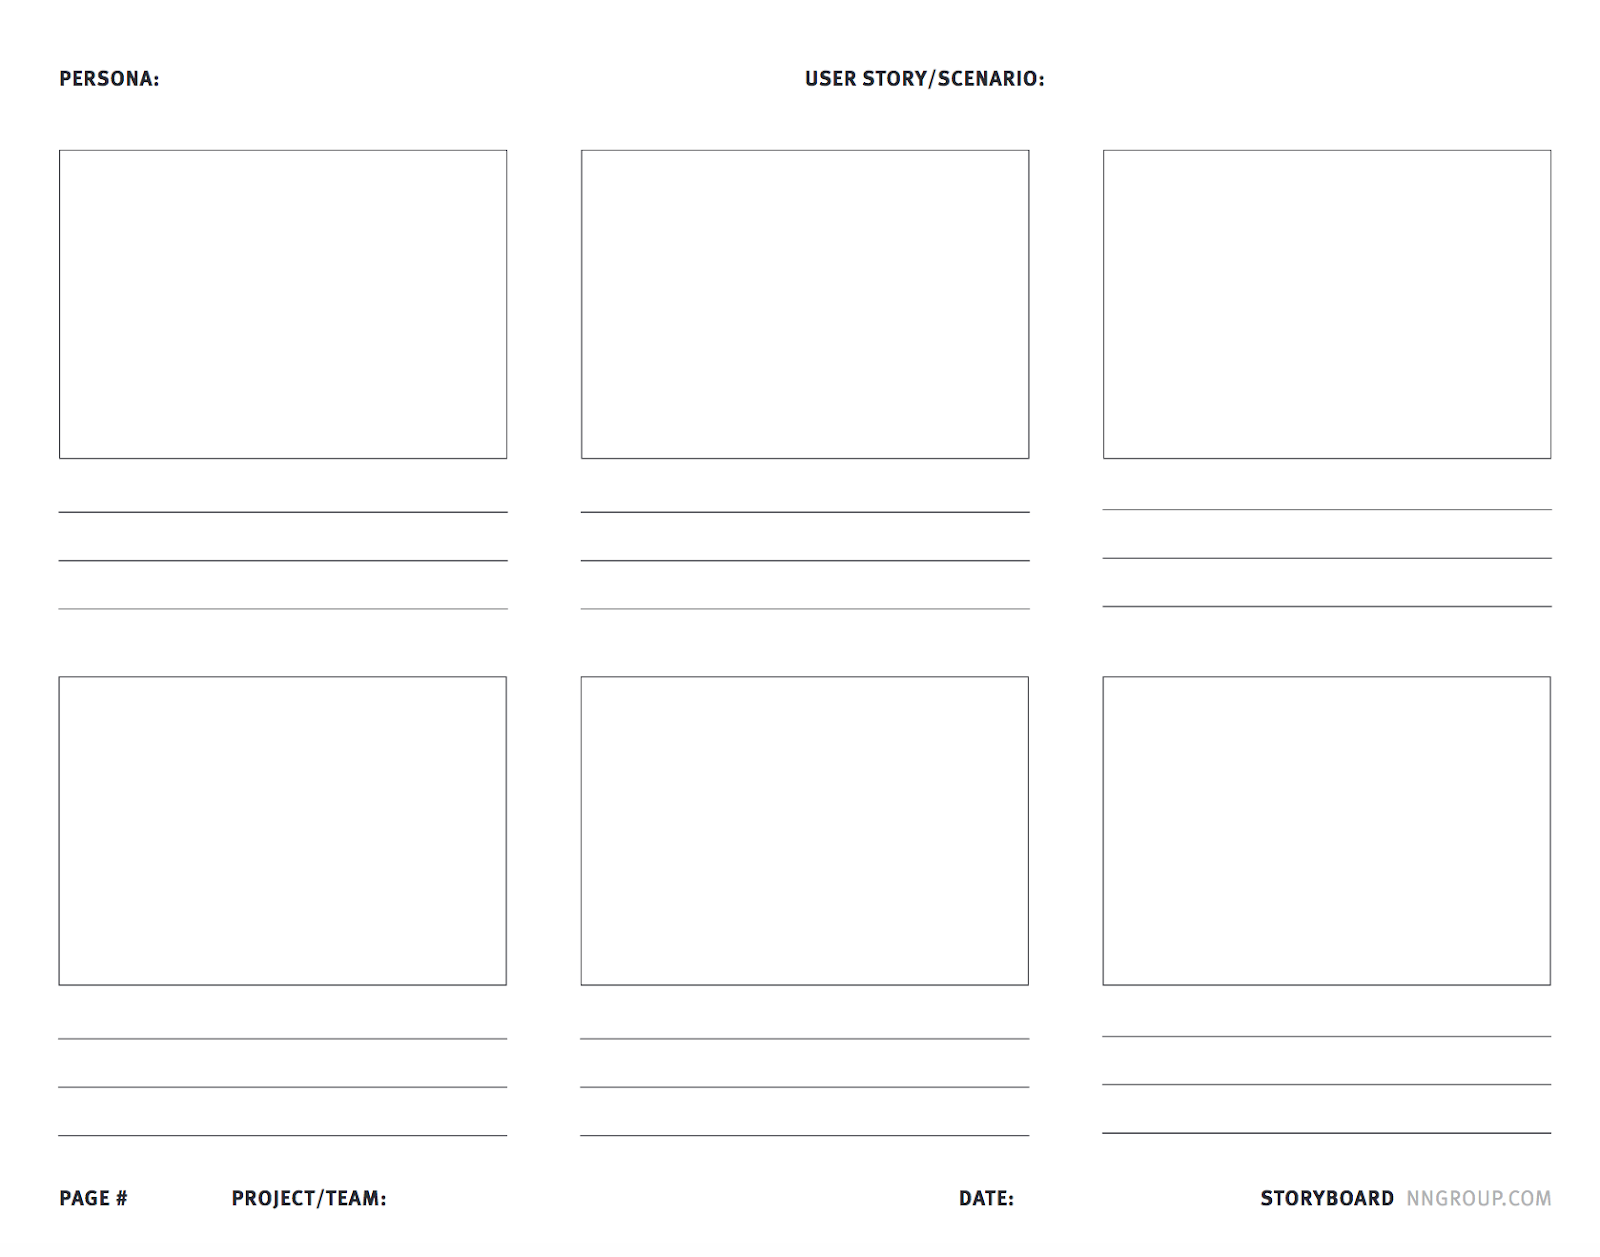 A blank UX storyboard template by NN.